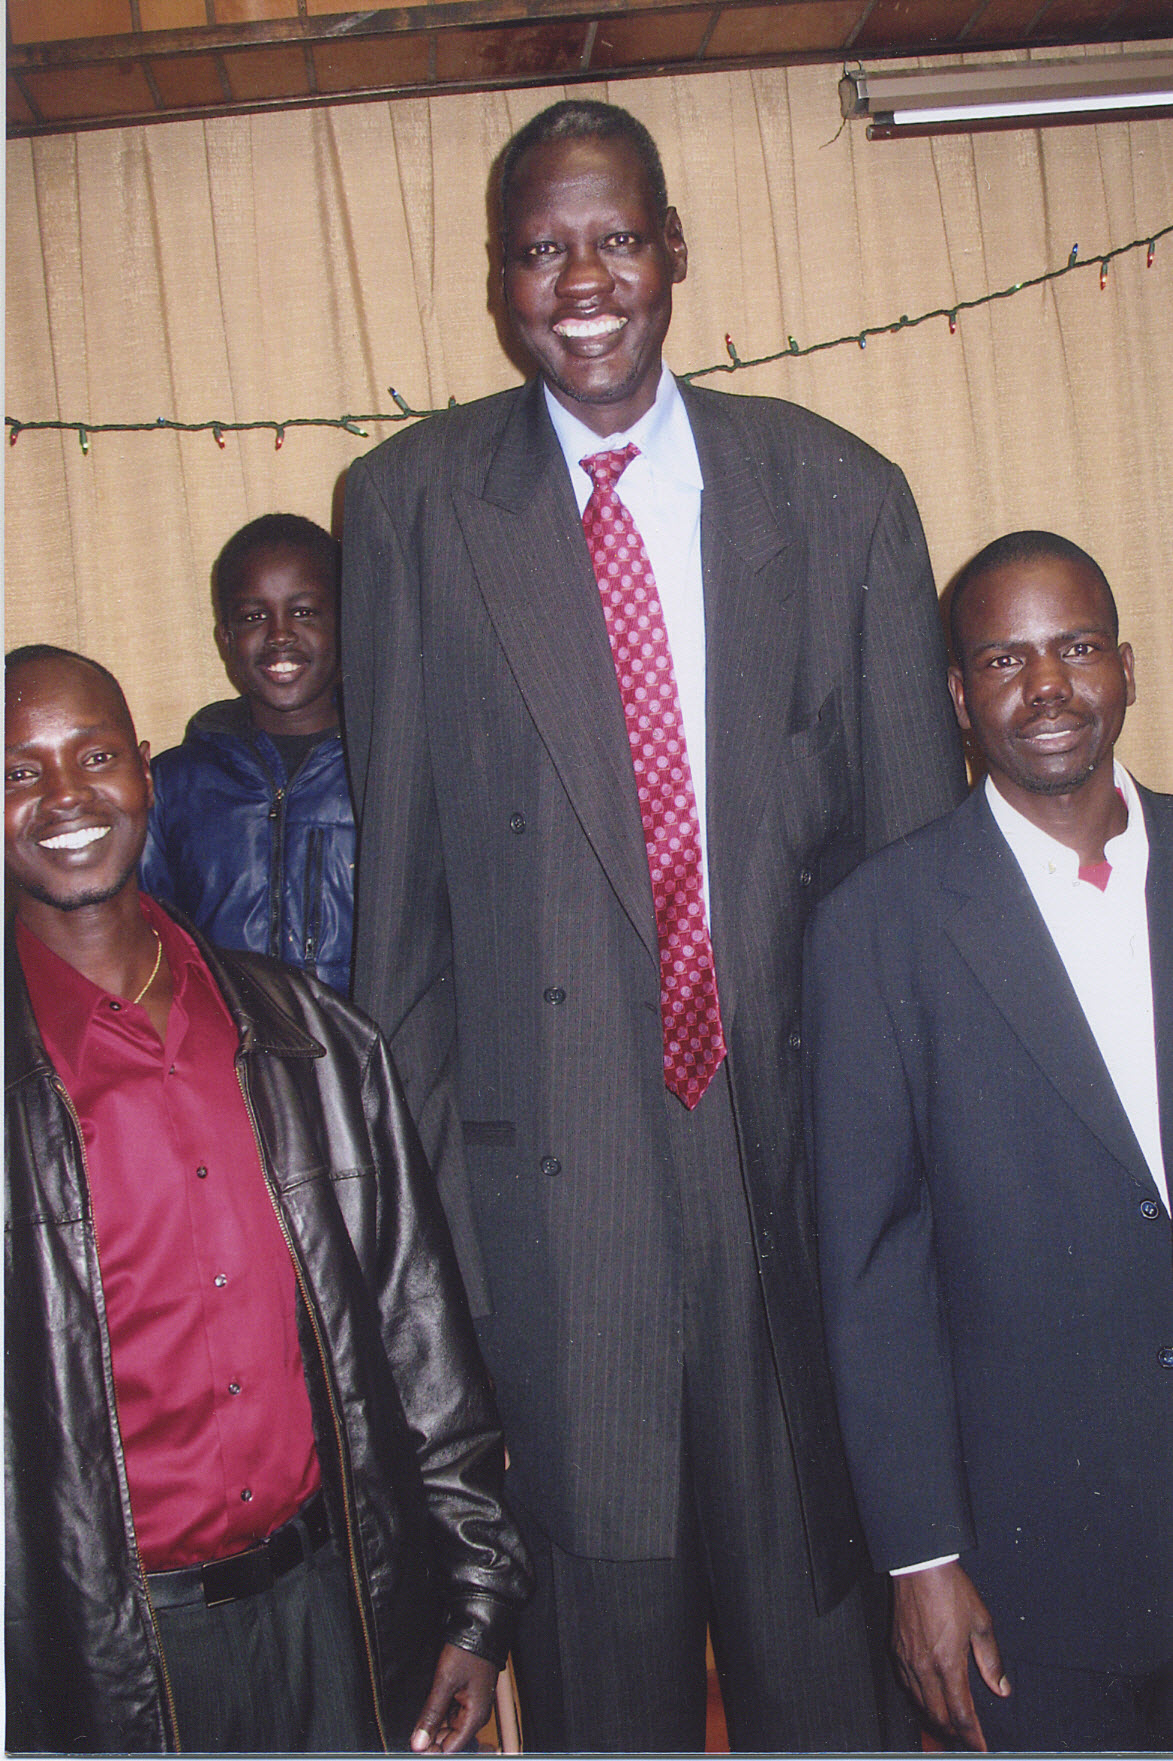 THE LEGENDARY NBA S TALLEST PLAYER MANUTE BOL THE ICONIC SOUTH